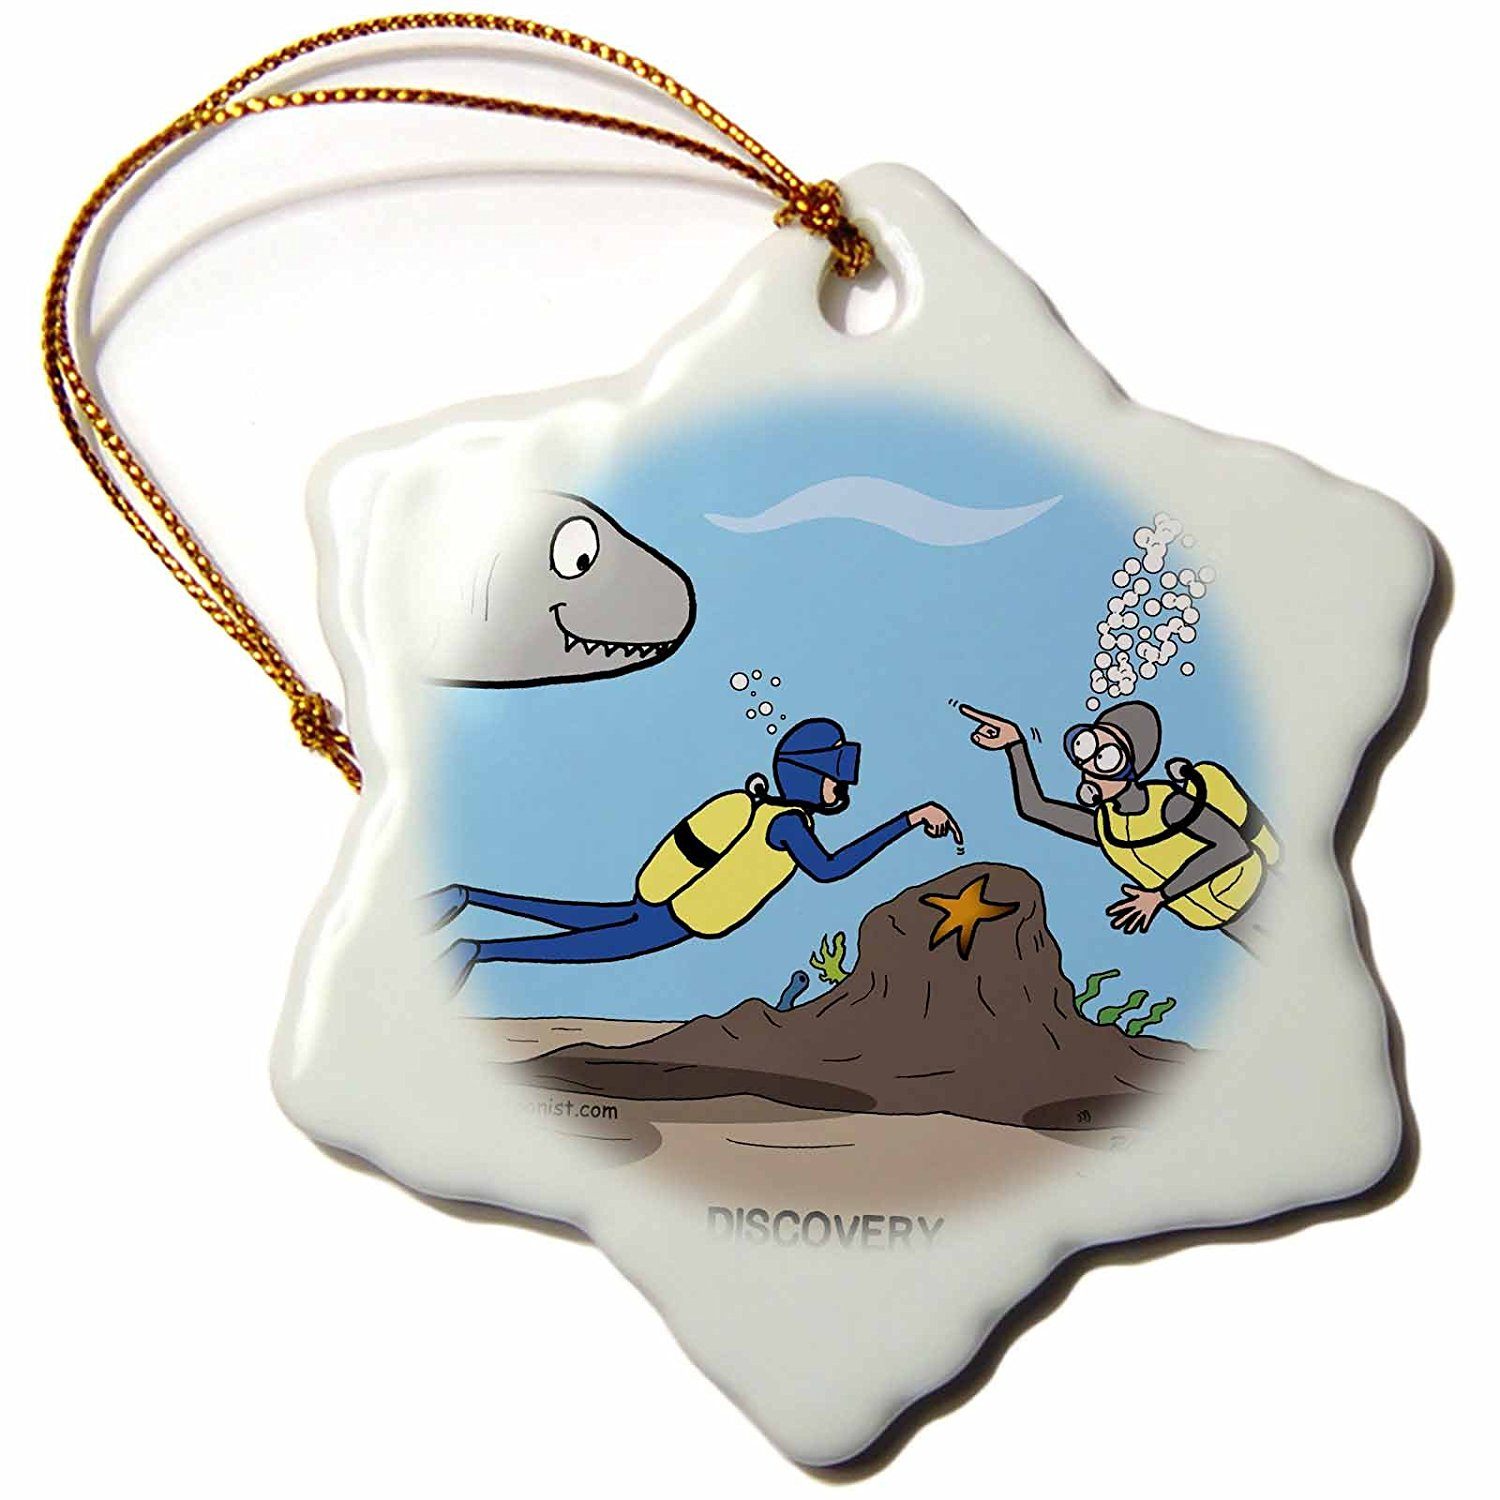 3drose Scuba Surprise Diver Points Out Star Fish and Buddy Points Out The Shark Snowflake Porcelain Ornament, 3-Inch